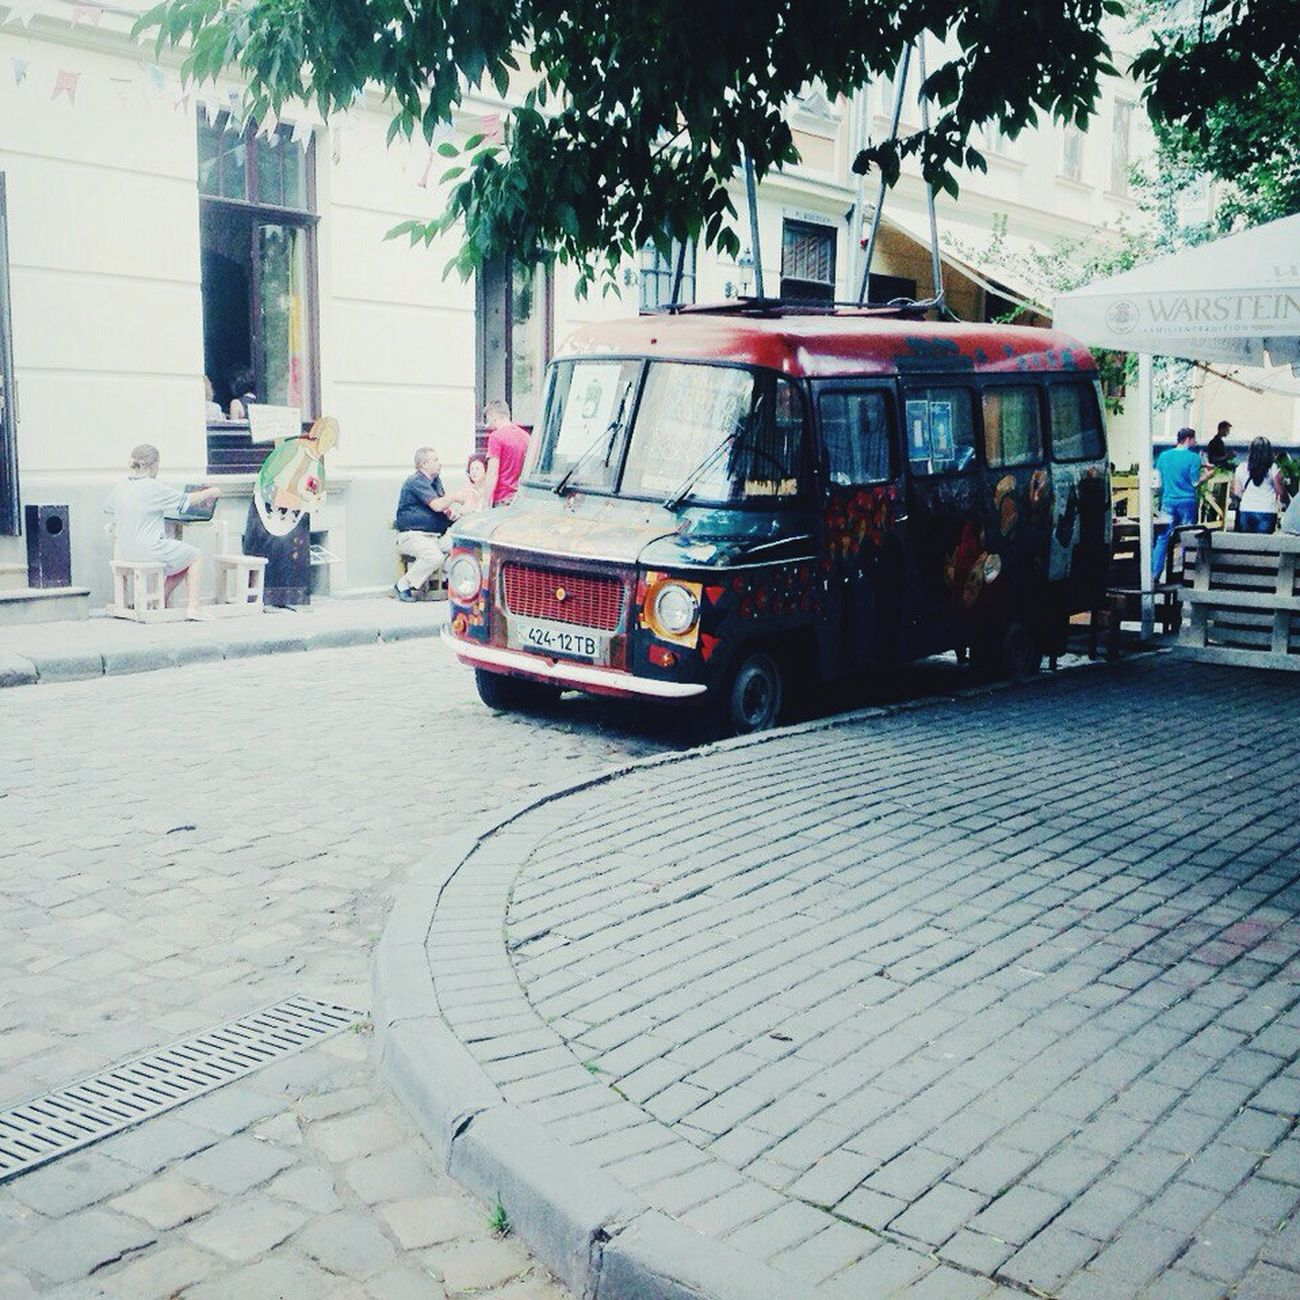 Transportation Mode Of Transport Street Land Vehicle Road Architecture Day Walkway No People City VSCO Vscocam Vscogood Vscogram Vscoua Lvivblog Lvivforyou Lvivgram Lviv1256 Lviv Lviv, Ukraine Lviving Sun Photo Non-urban Scene